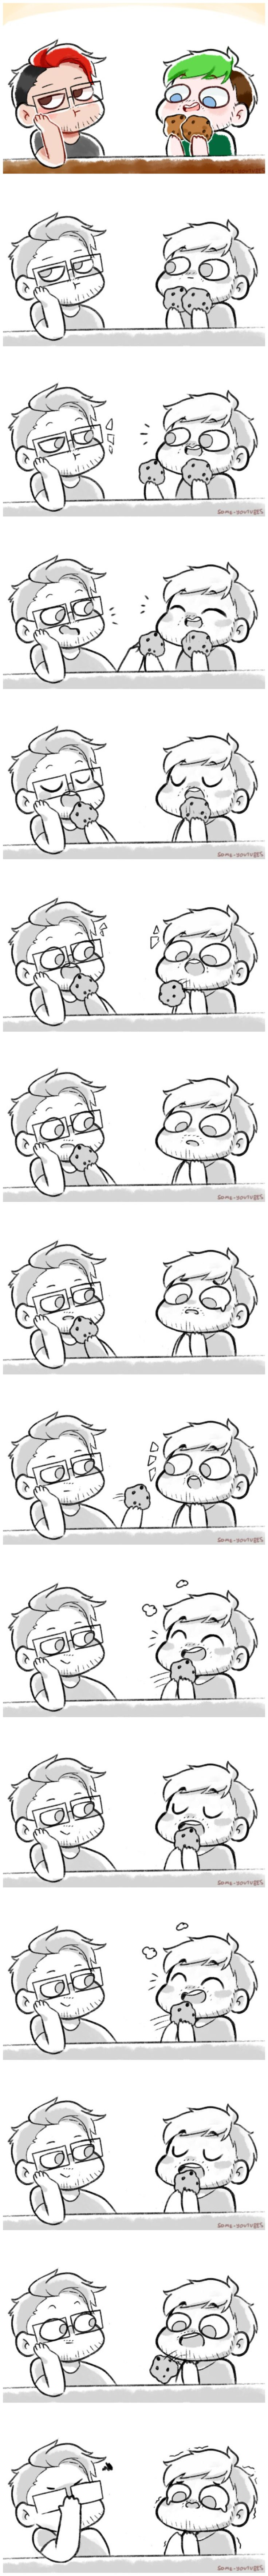 Oh Jack XD /Markiplier/Jacksepticeye credit to who made this (i didnt make this)